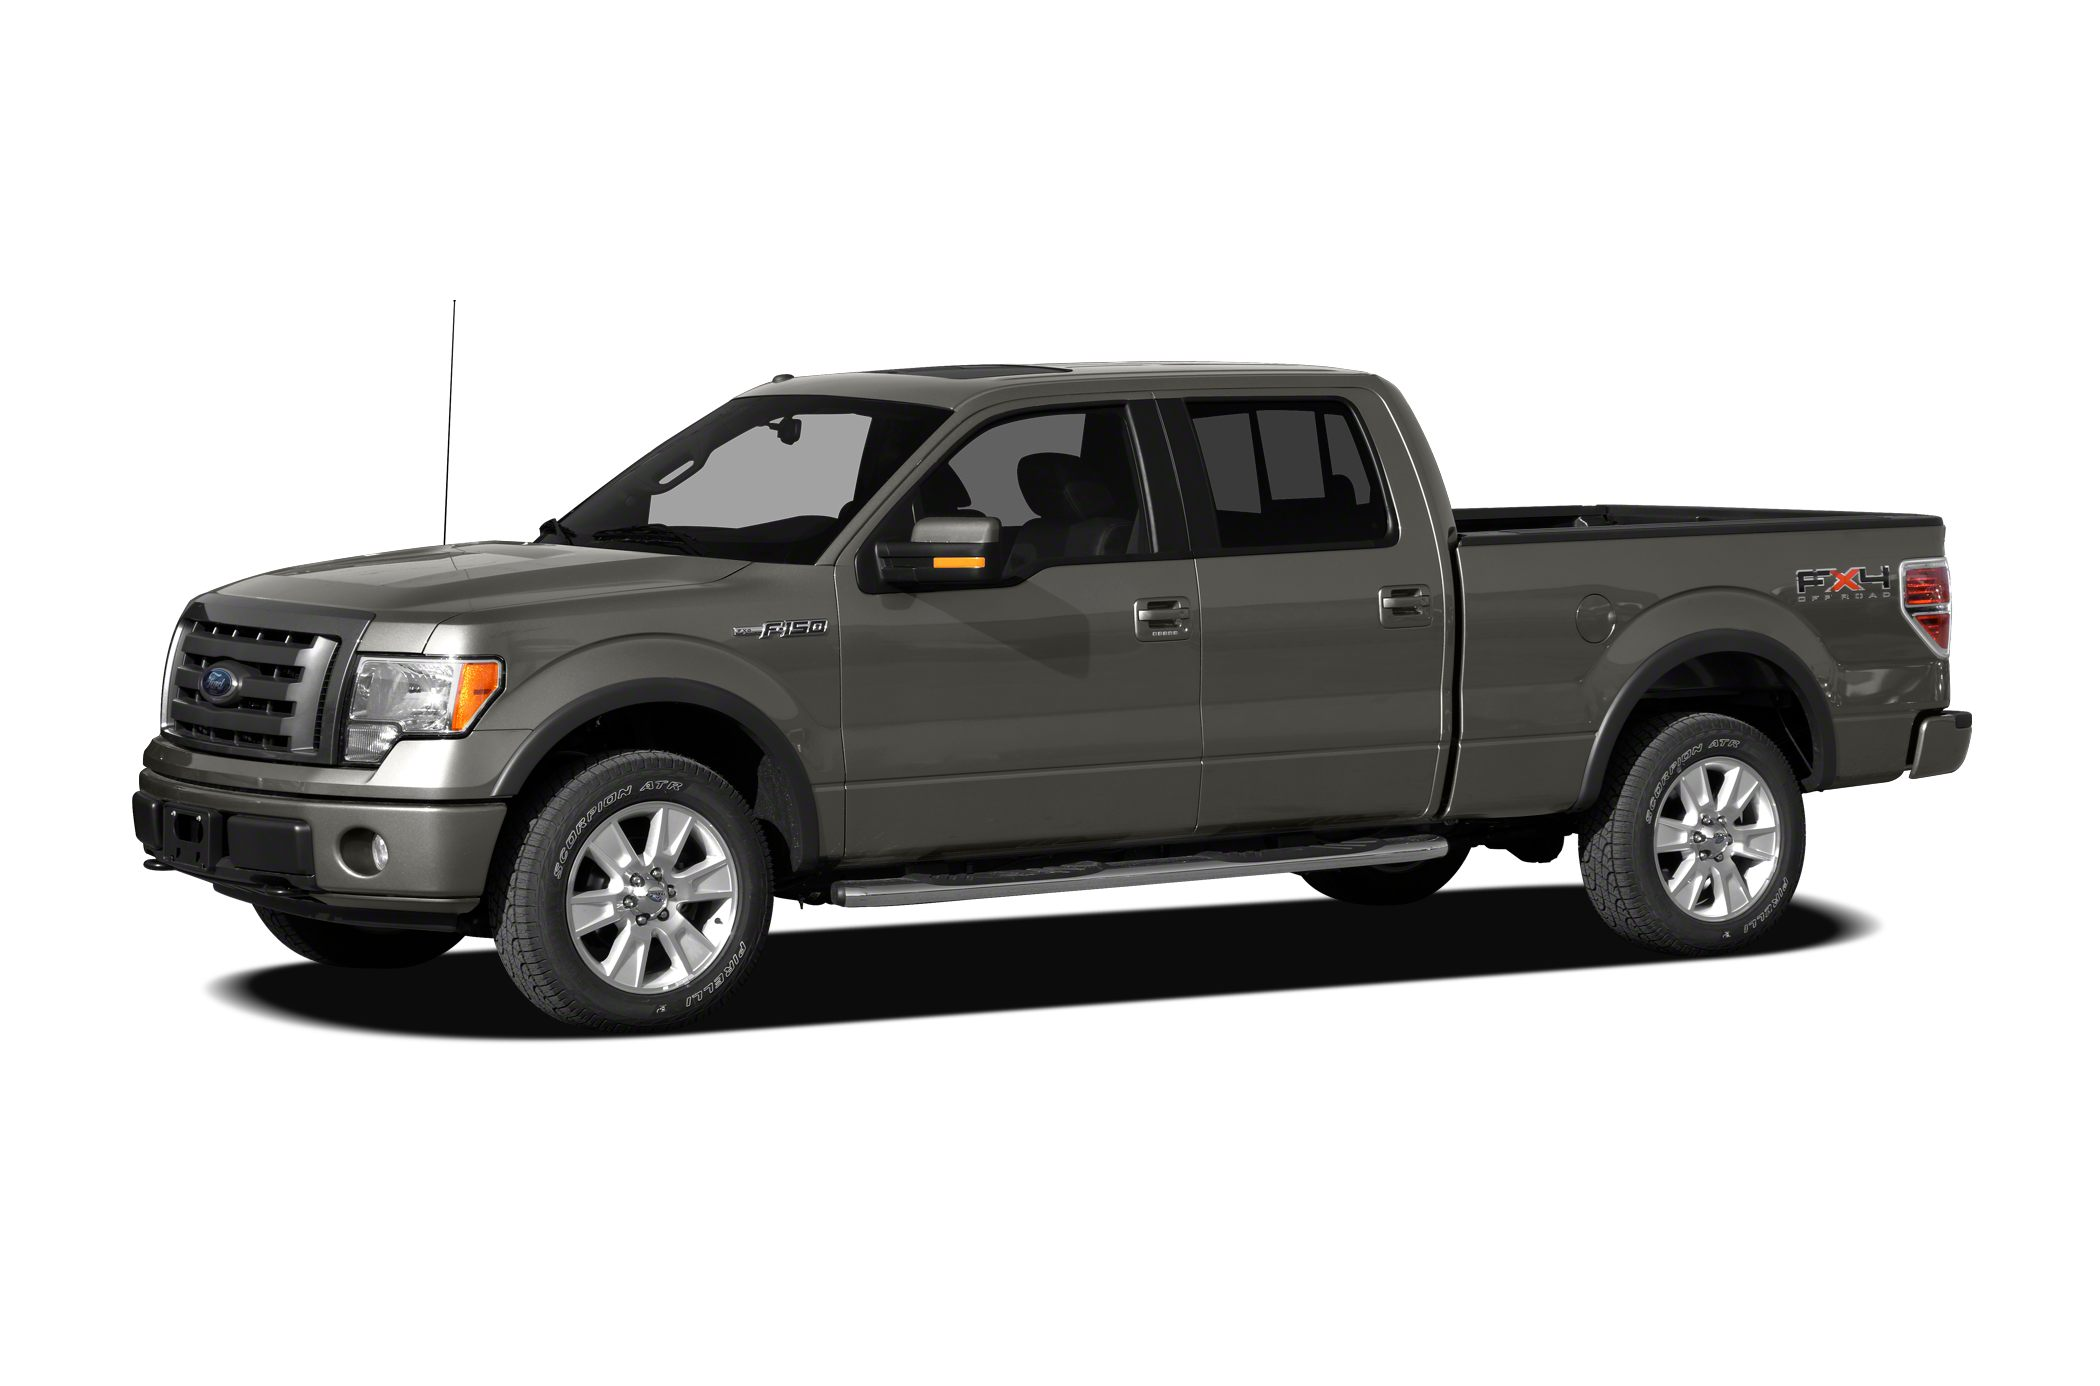 2011 Ford F150 Platinum Crew Cab Pickup for sale in Mobile for $28,450 with 86,490 miles.